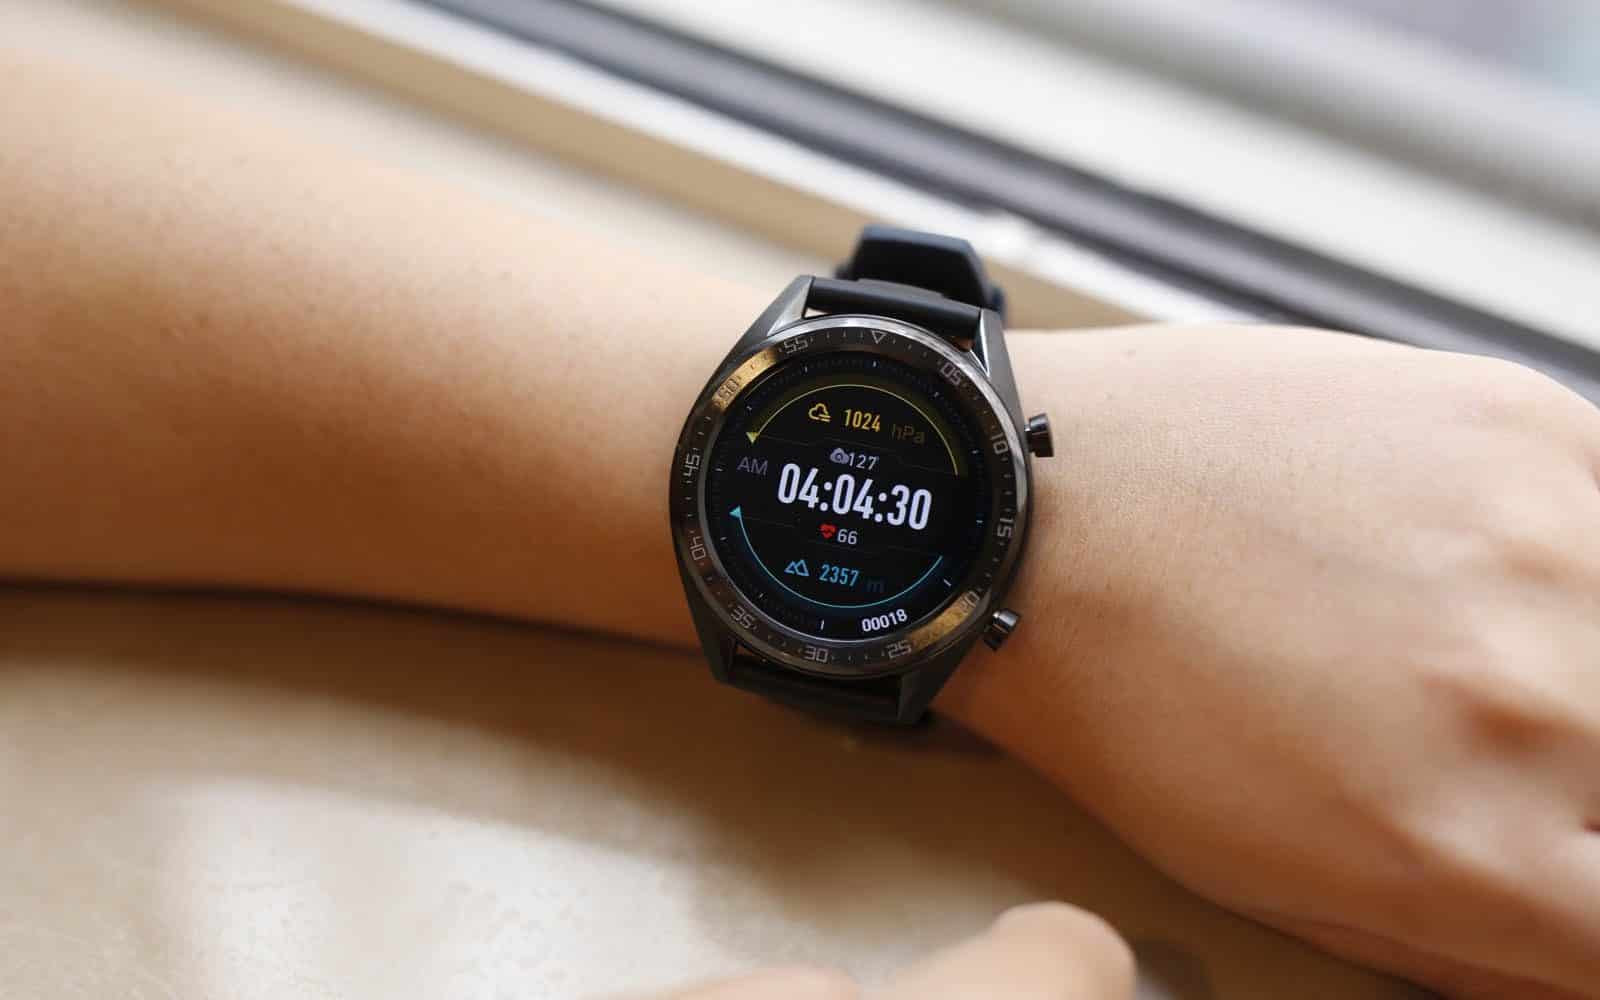 Huawei Watch Gt 2e Launched In India With A 158 Price Tag Gizchina Com